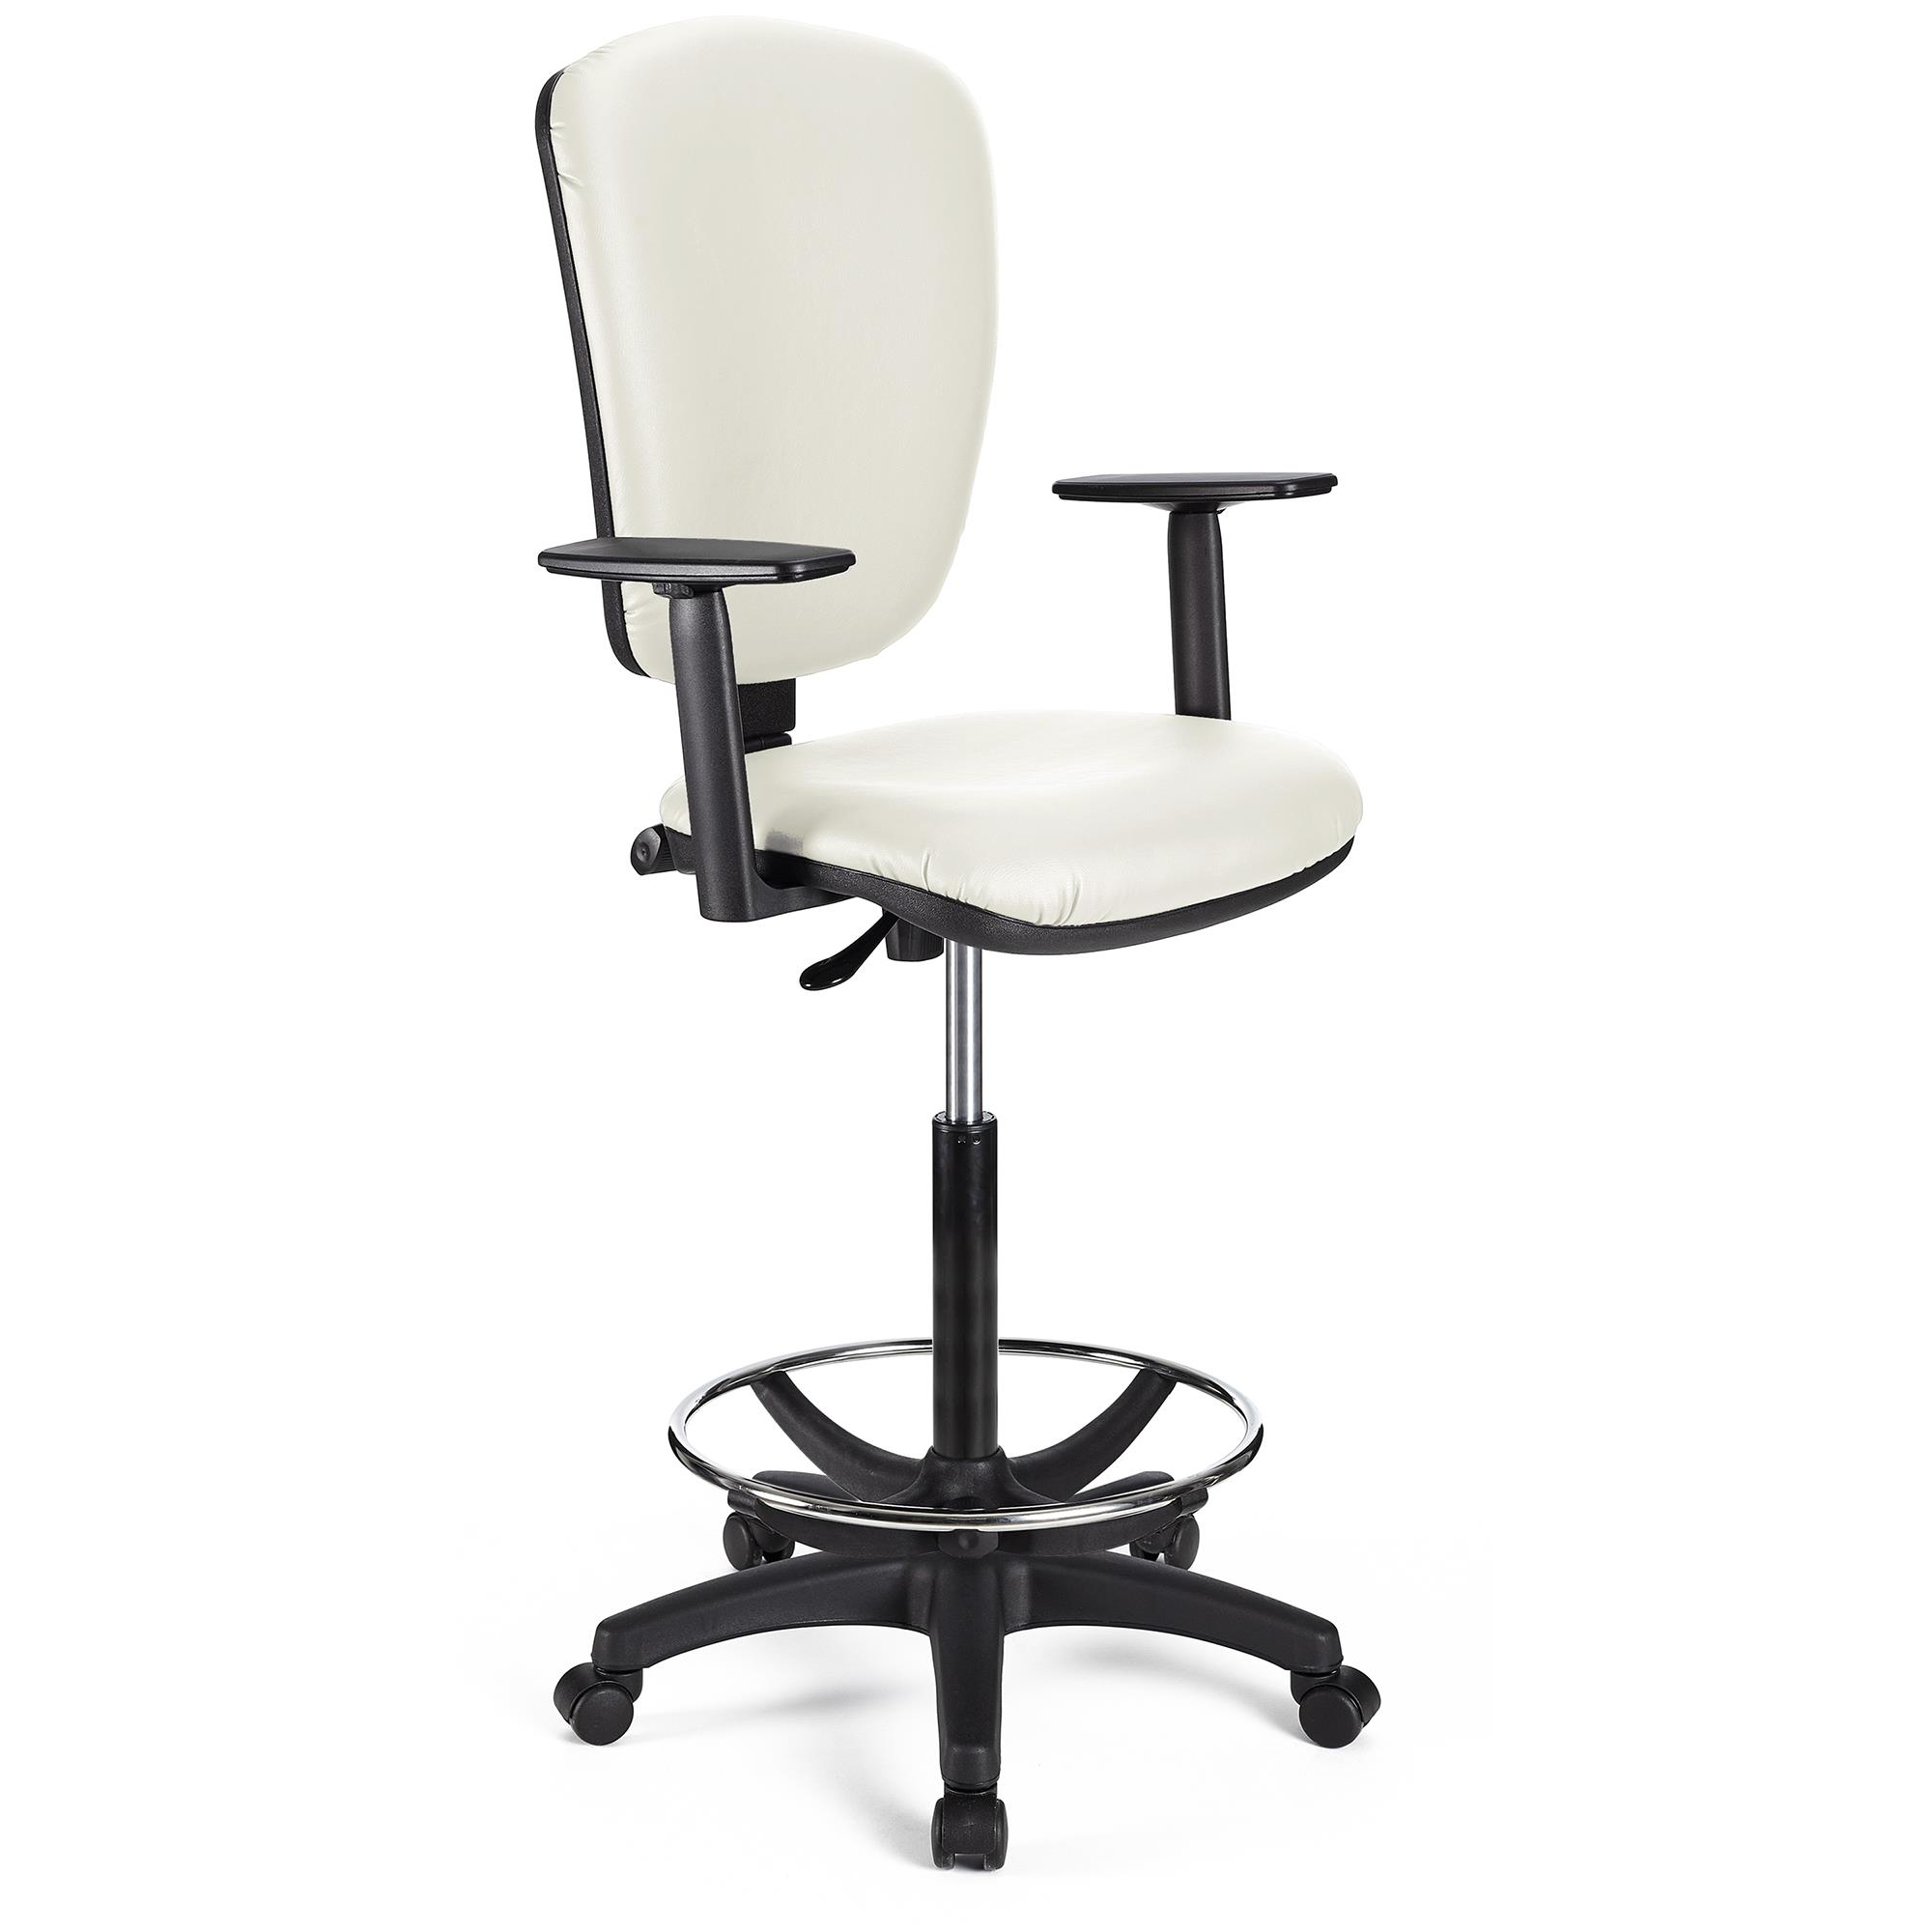 Tabouret de Travail CALIPSO PLUS CUIR, Dossier Ajustable, Grand Rembourrage, Blanc